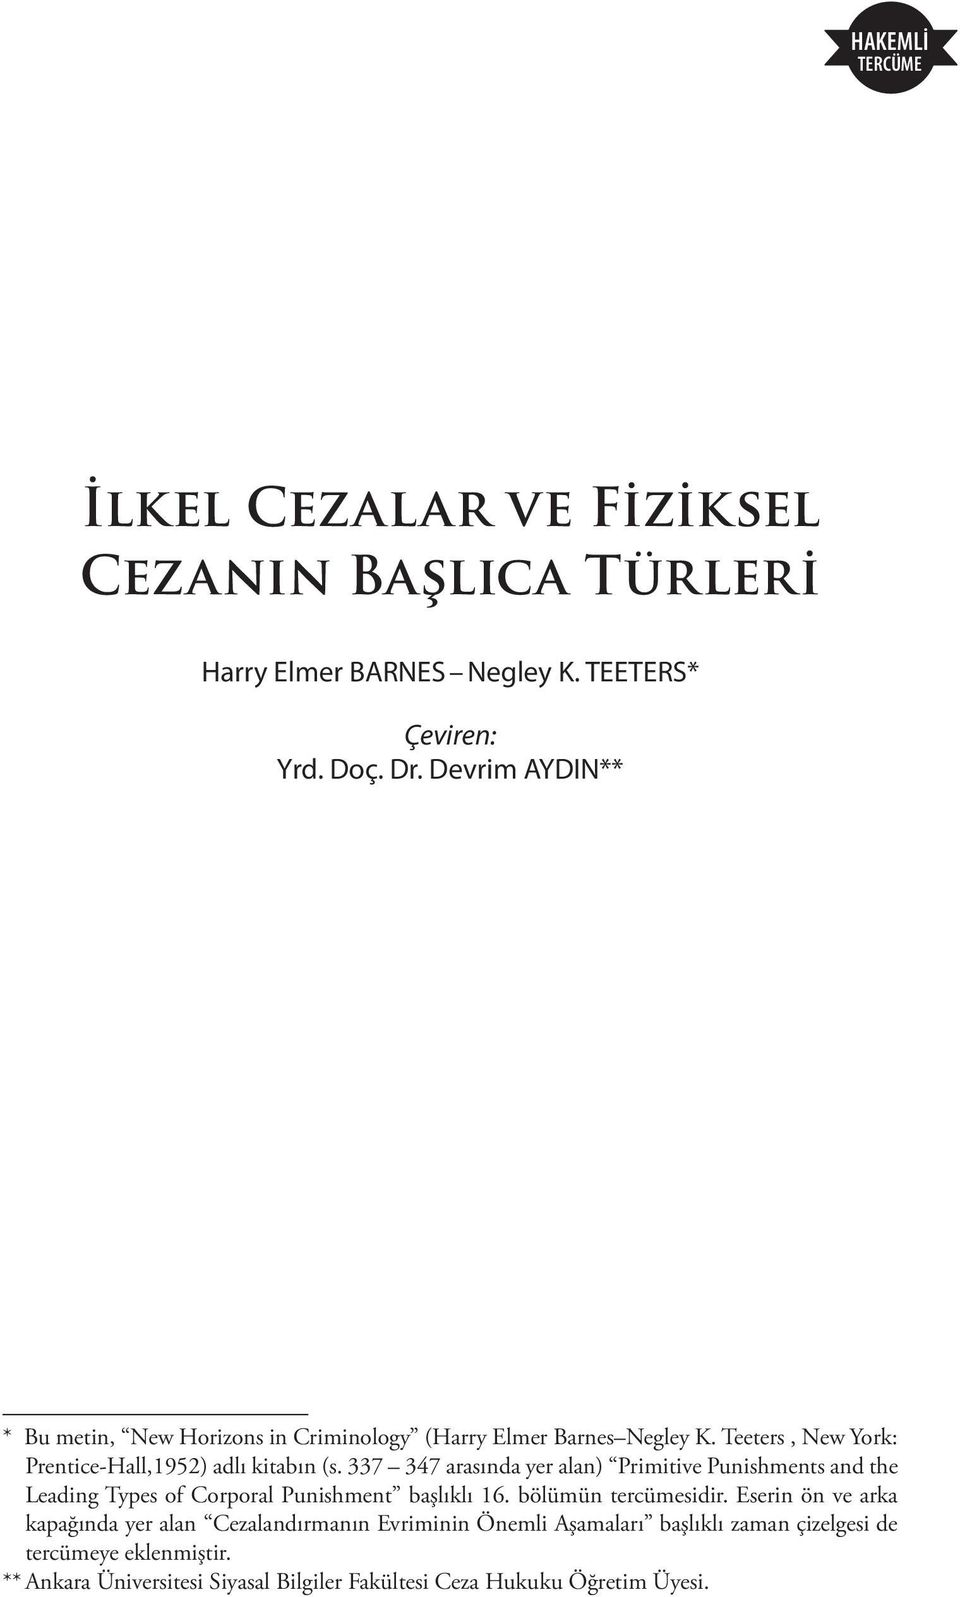 337 347 arasında yer alan) Primitive Punishments and the Leading Types of Corporal Punishment başlıklı 16. bölümün tercümesidir.